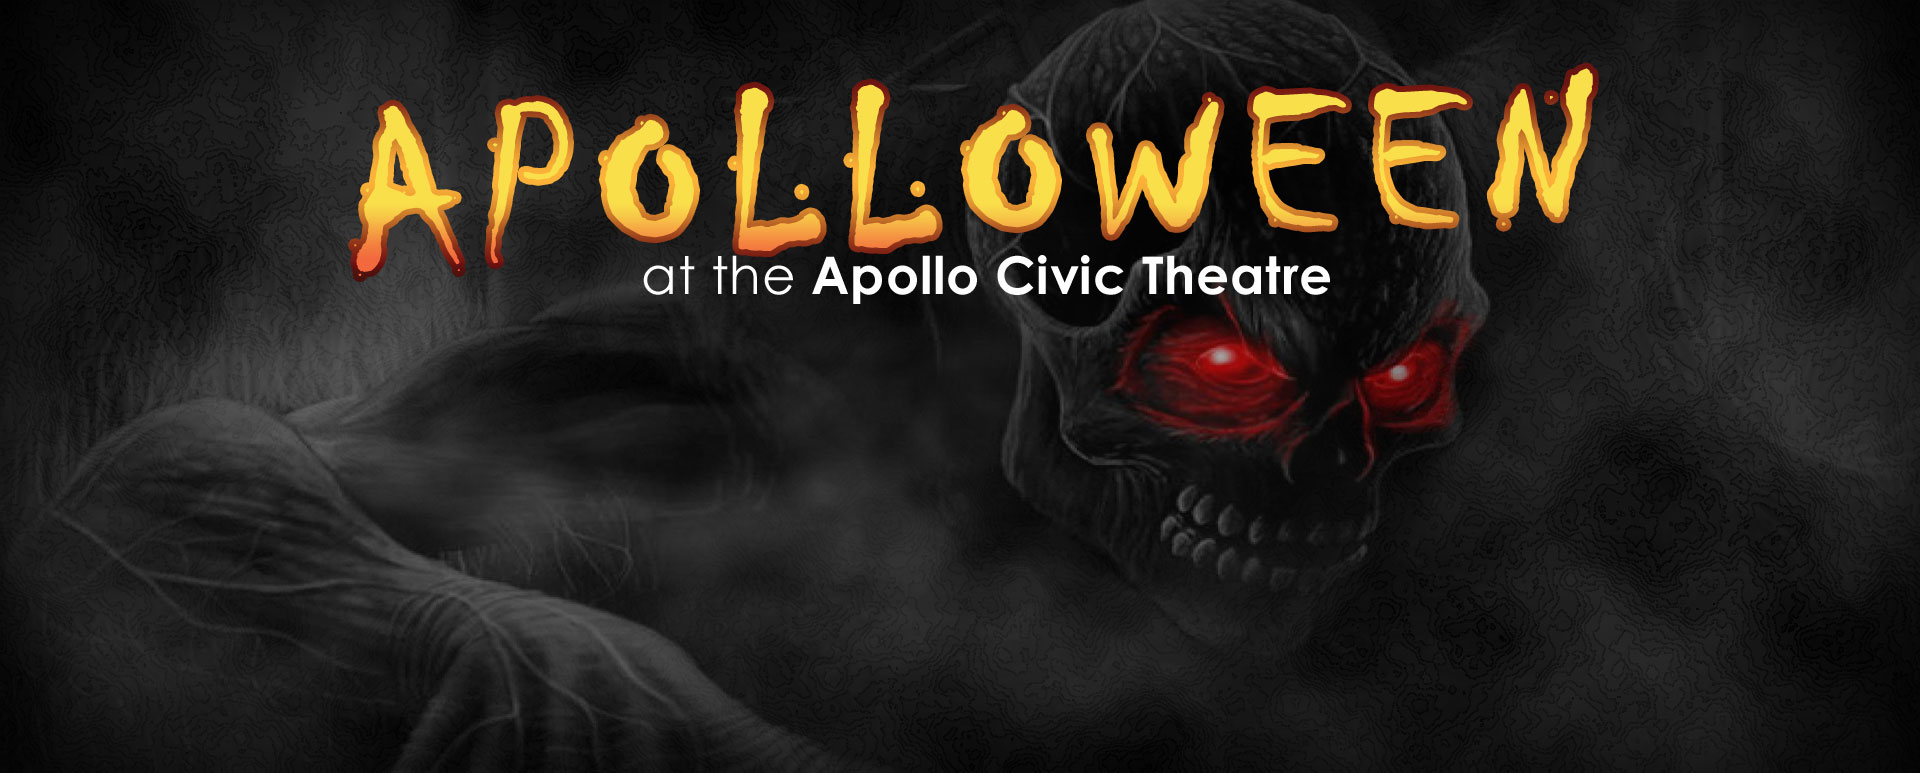 Apolloween Events